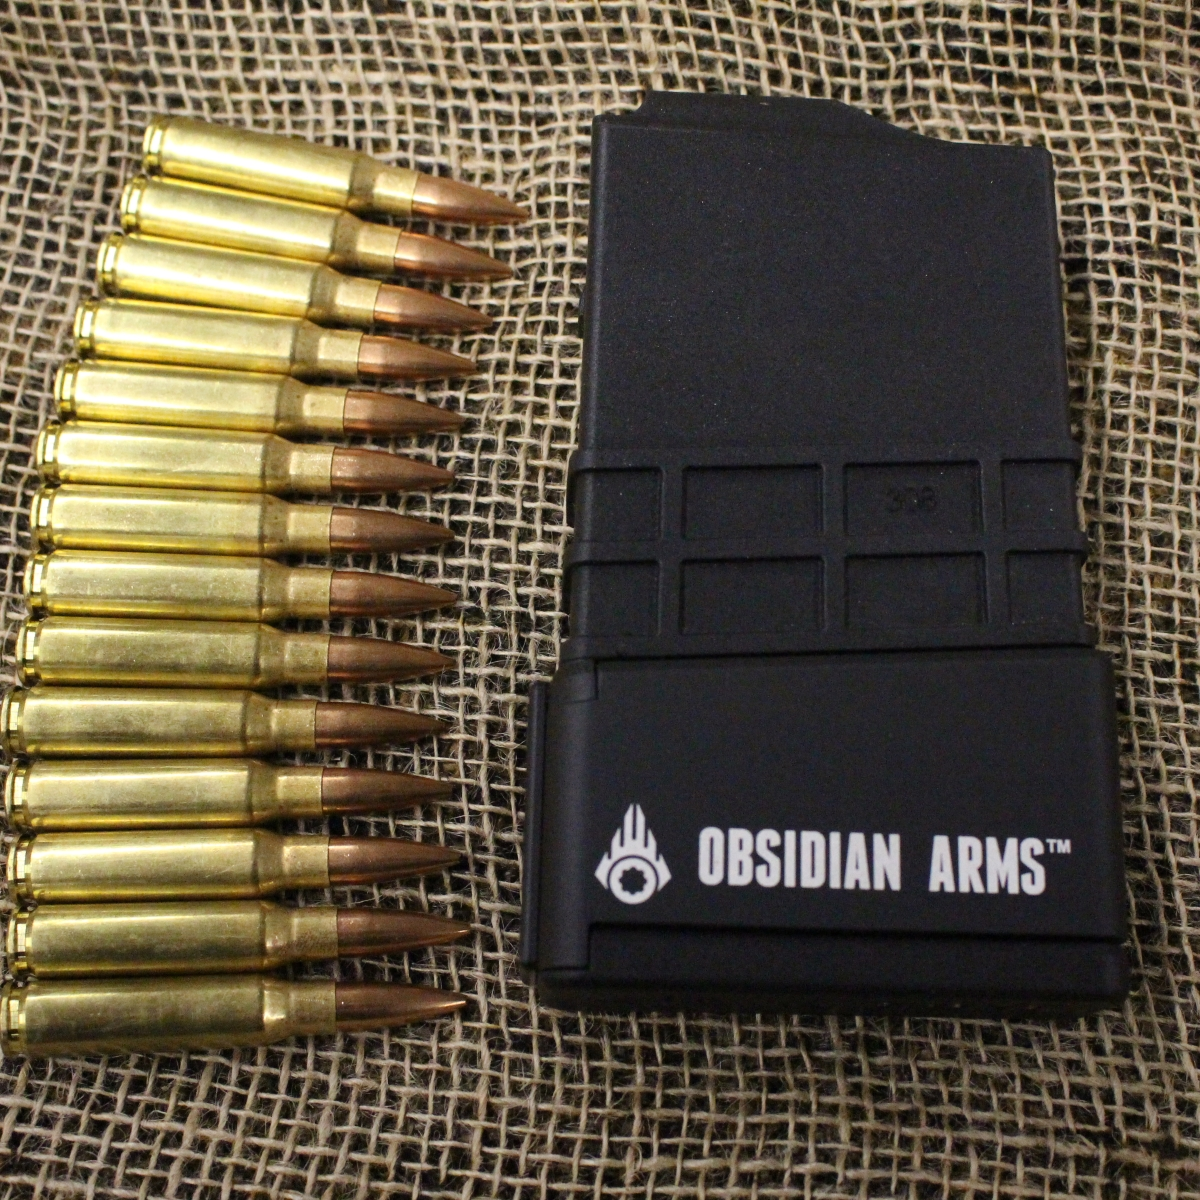 Obsidian Arms +6 Extension for MDT 308 Polymer Magazine